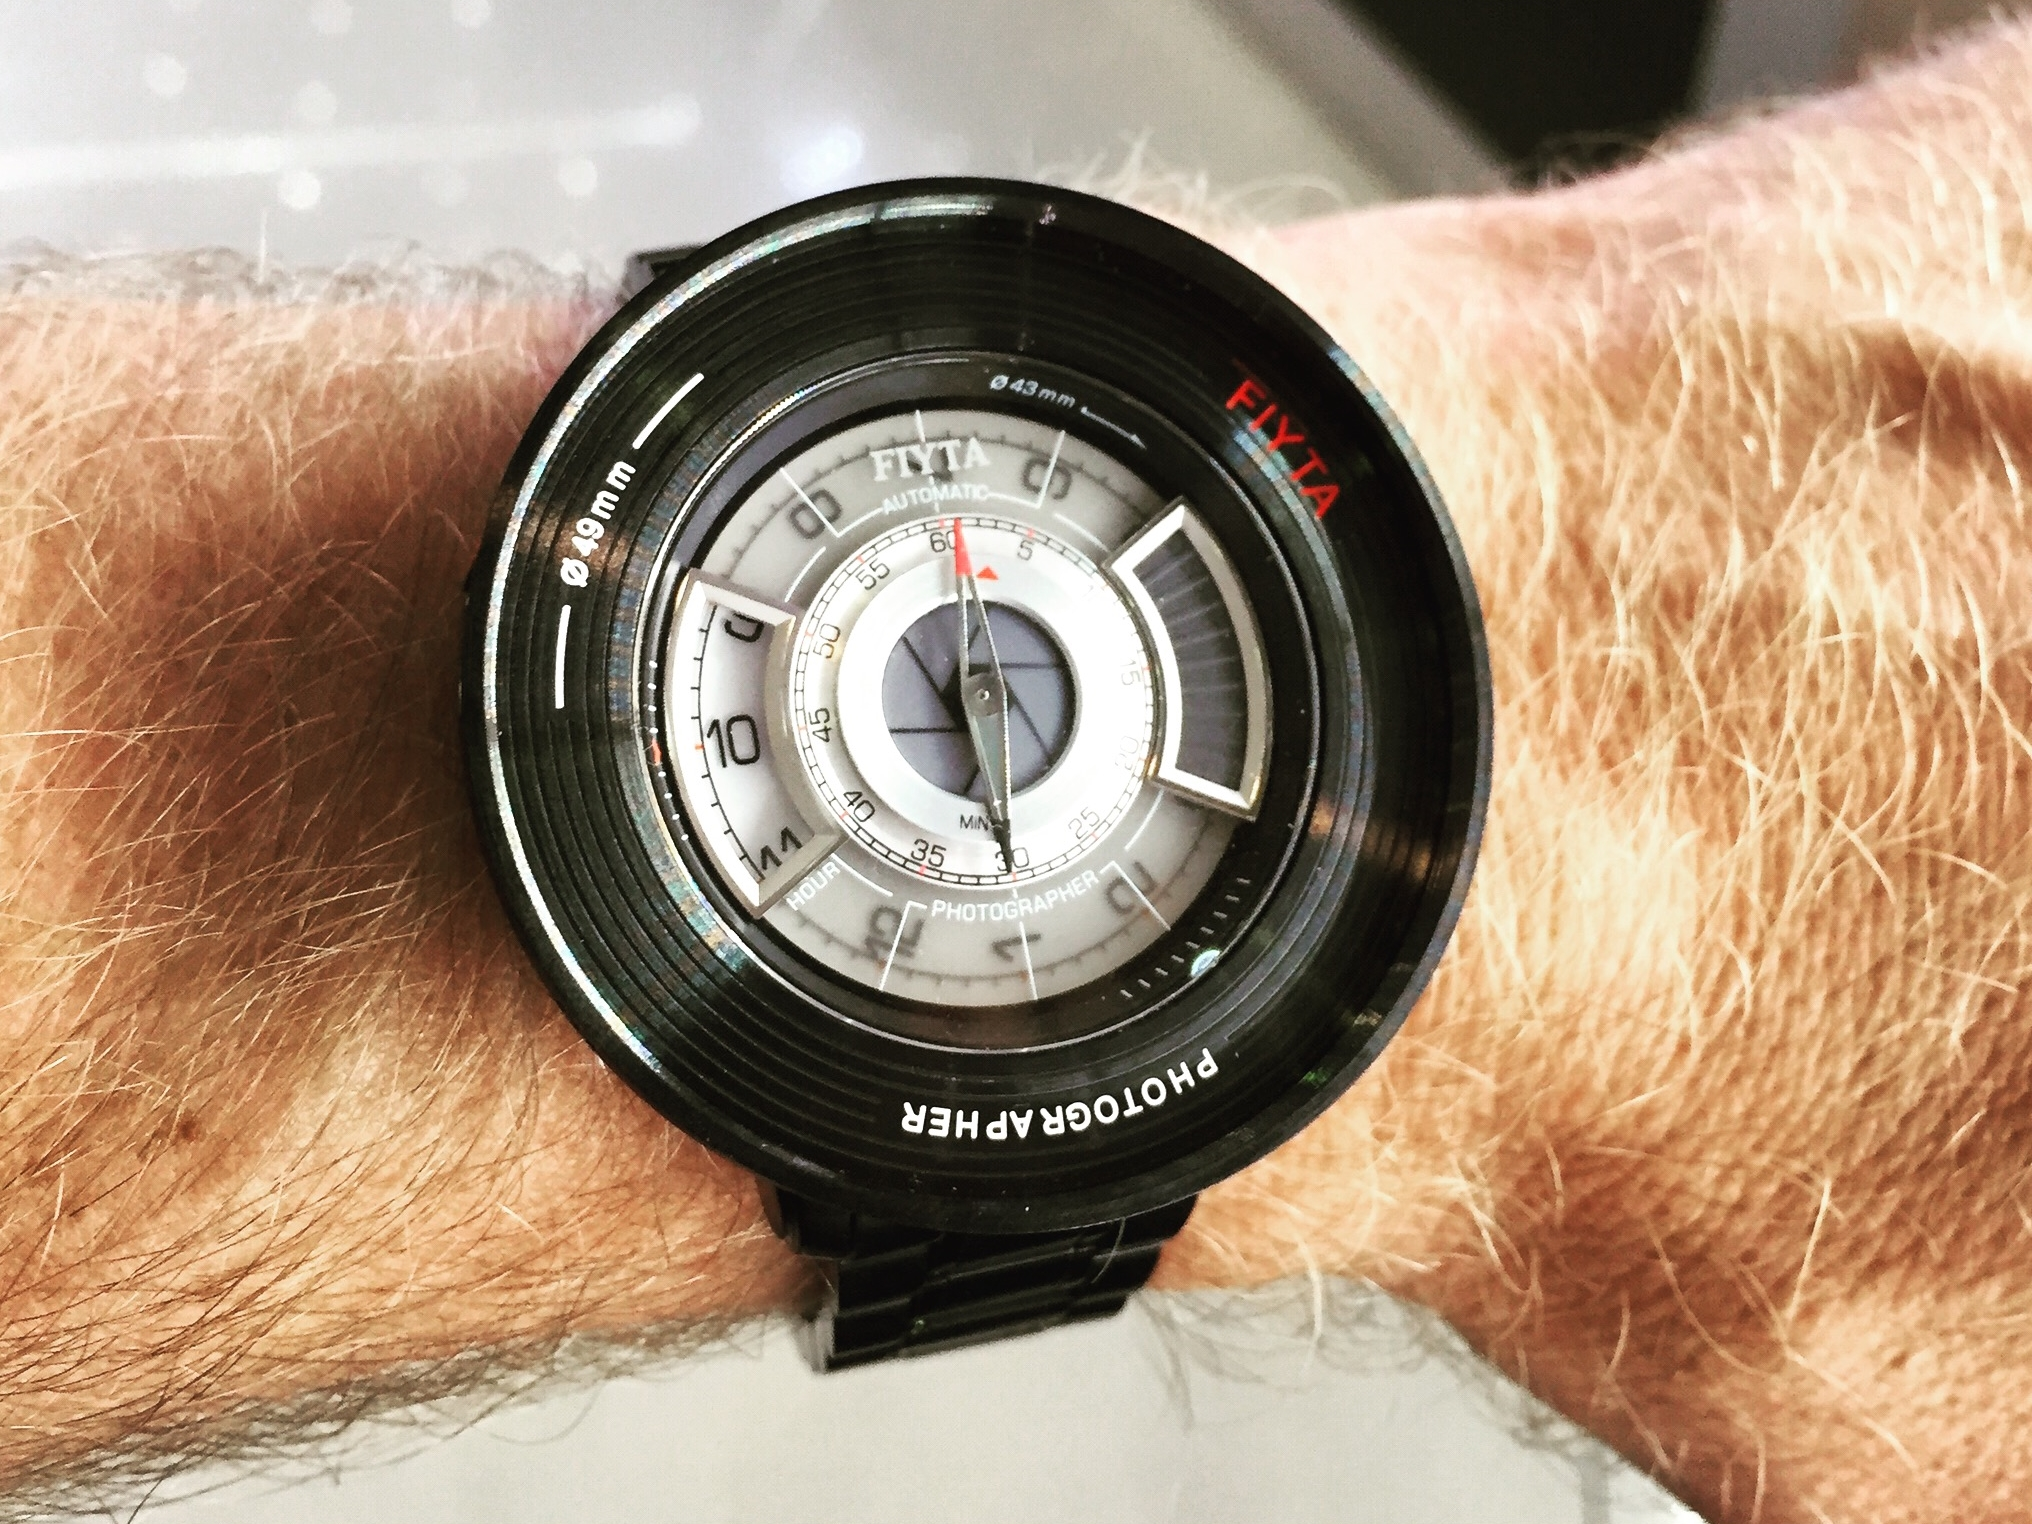 The widest bezel attachment is 49mm